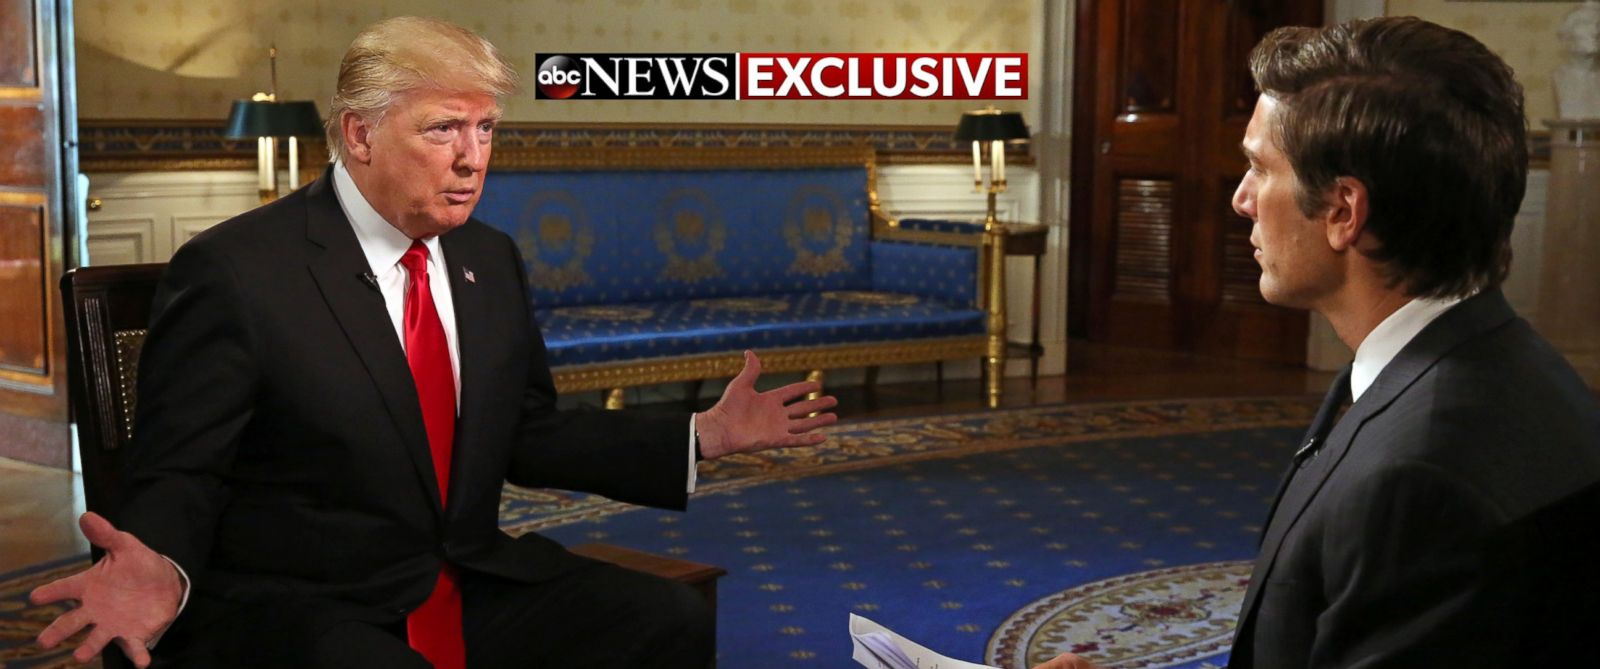 PHOTO: ABC News David Muir talks to President Donald J. Trump in the Blue Room of the White House during Trumps first one-on-one television interview since being sworn in as the 45th president of the United States, Jan. 25, 2017.